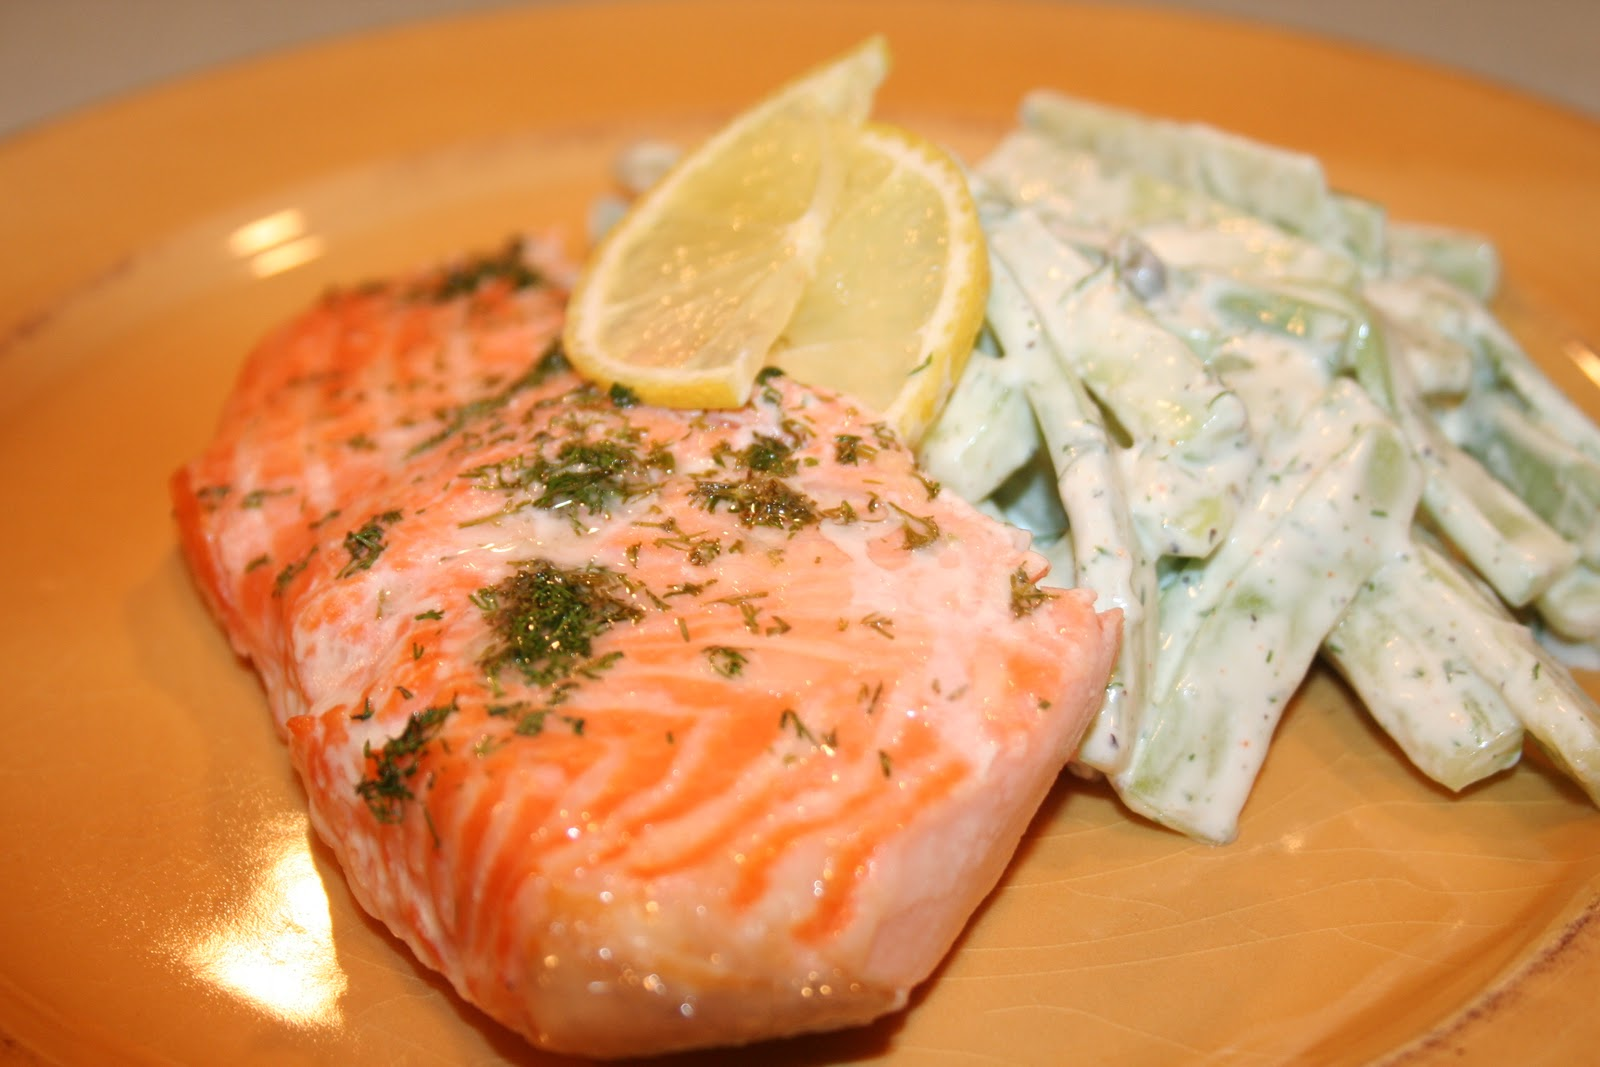 COOK WITH SUSAN: Baked Salmon with Creamy Dill Sauce